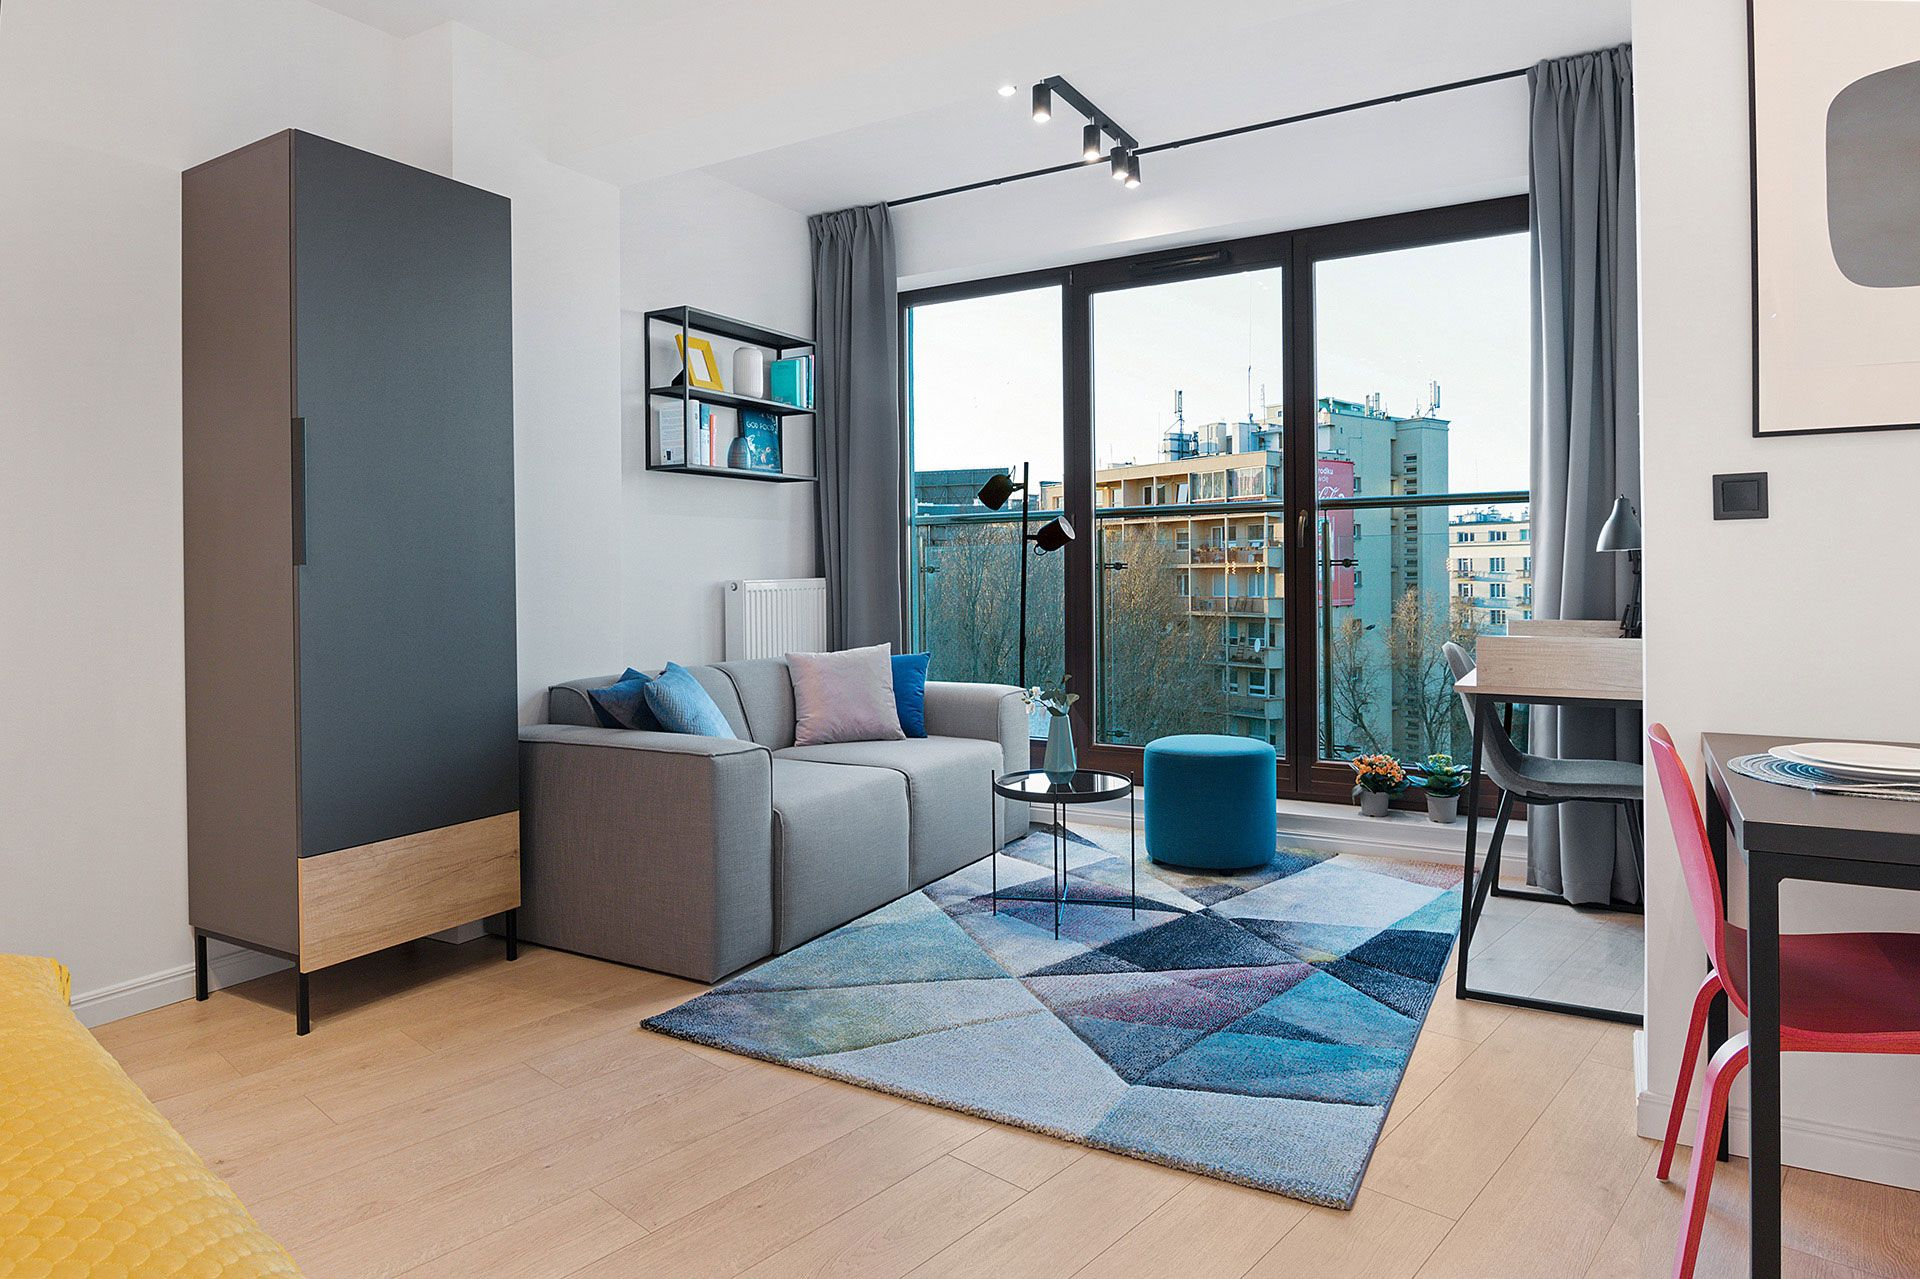 Studio - Medium apartment to rent in Warsaw UPR-A-070-1